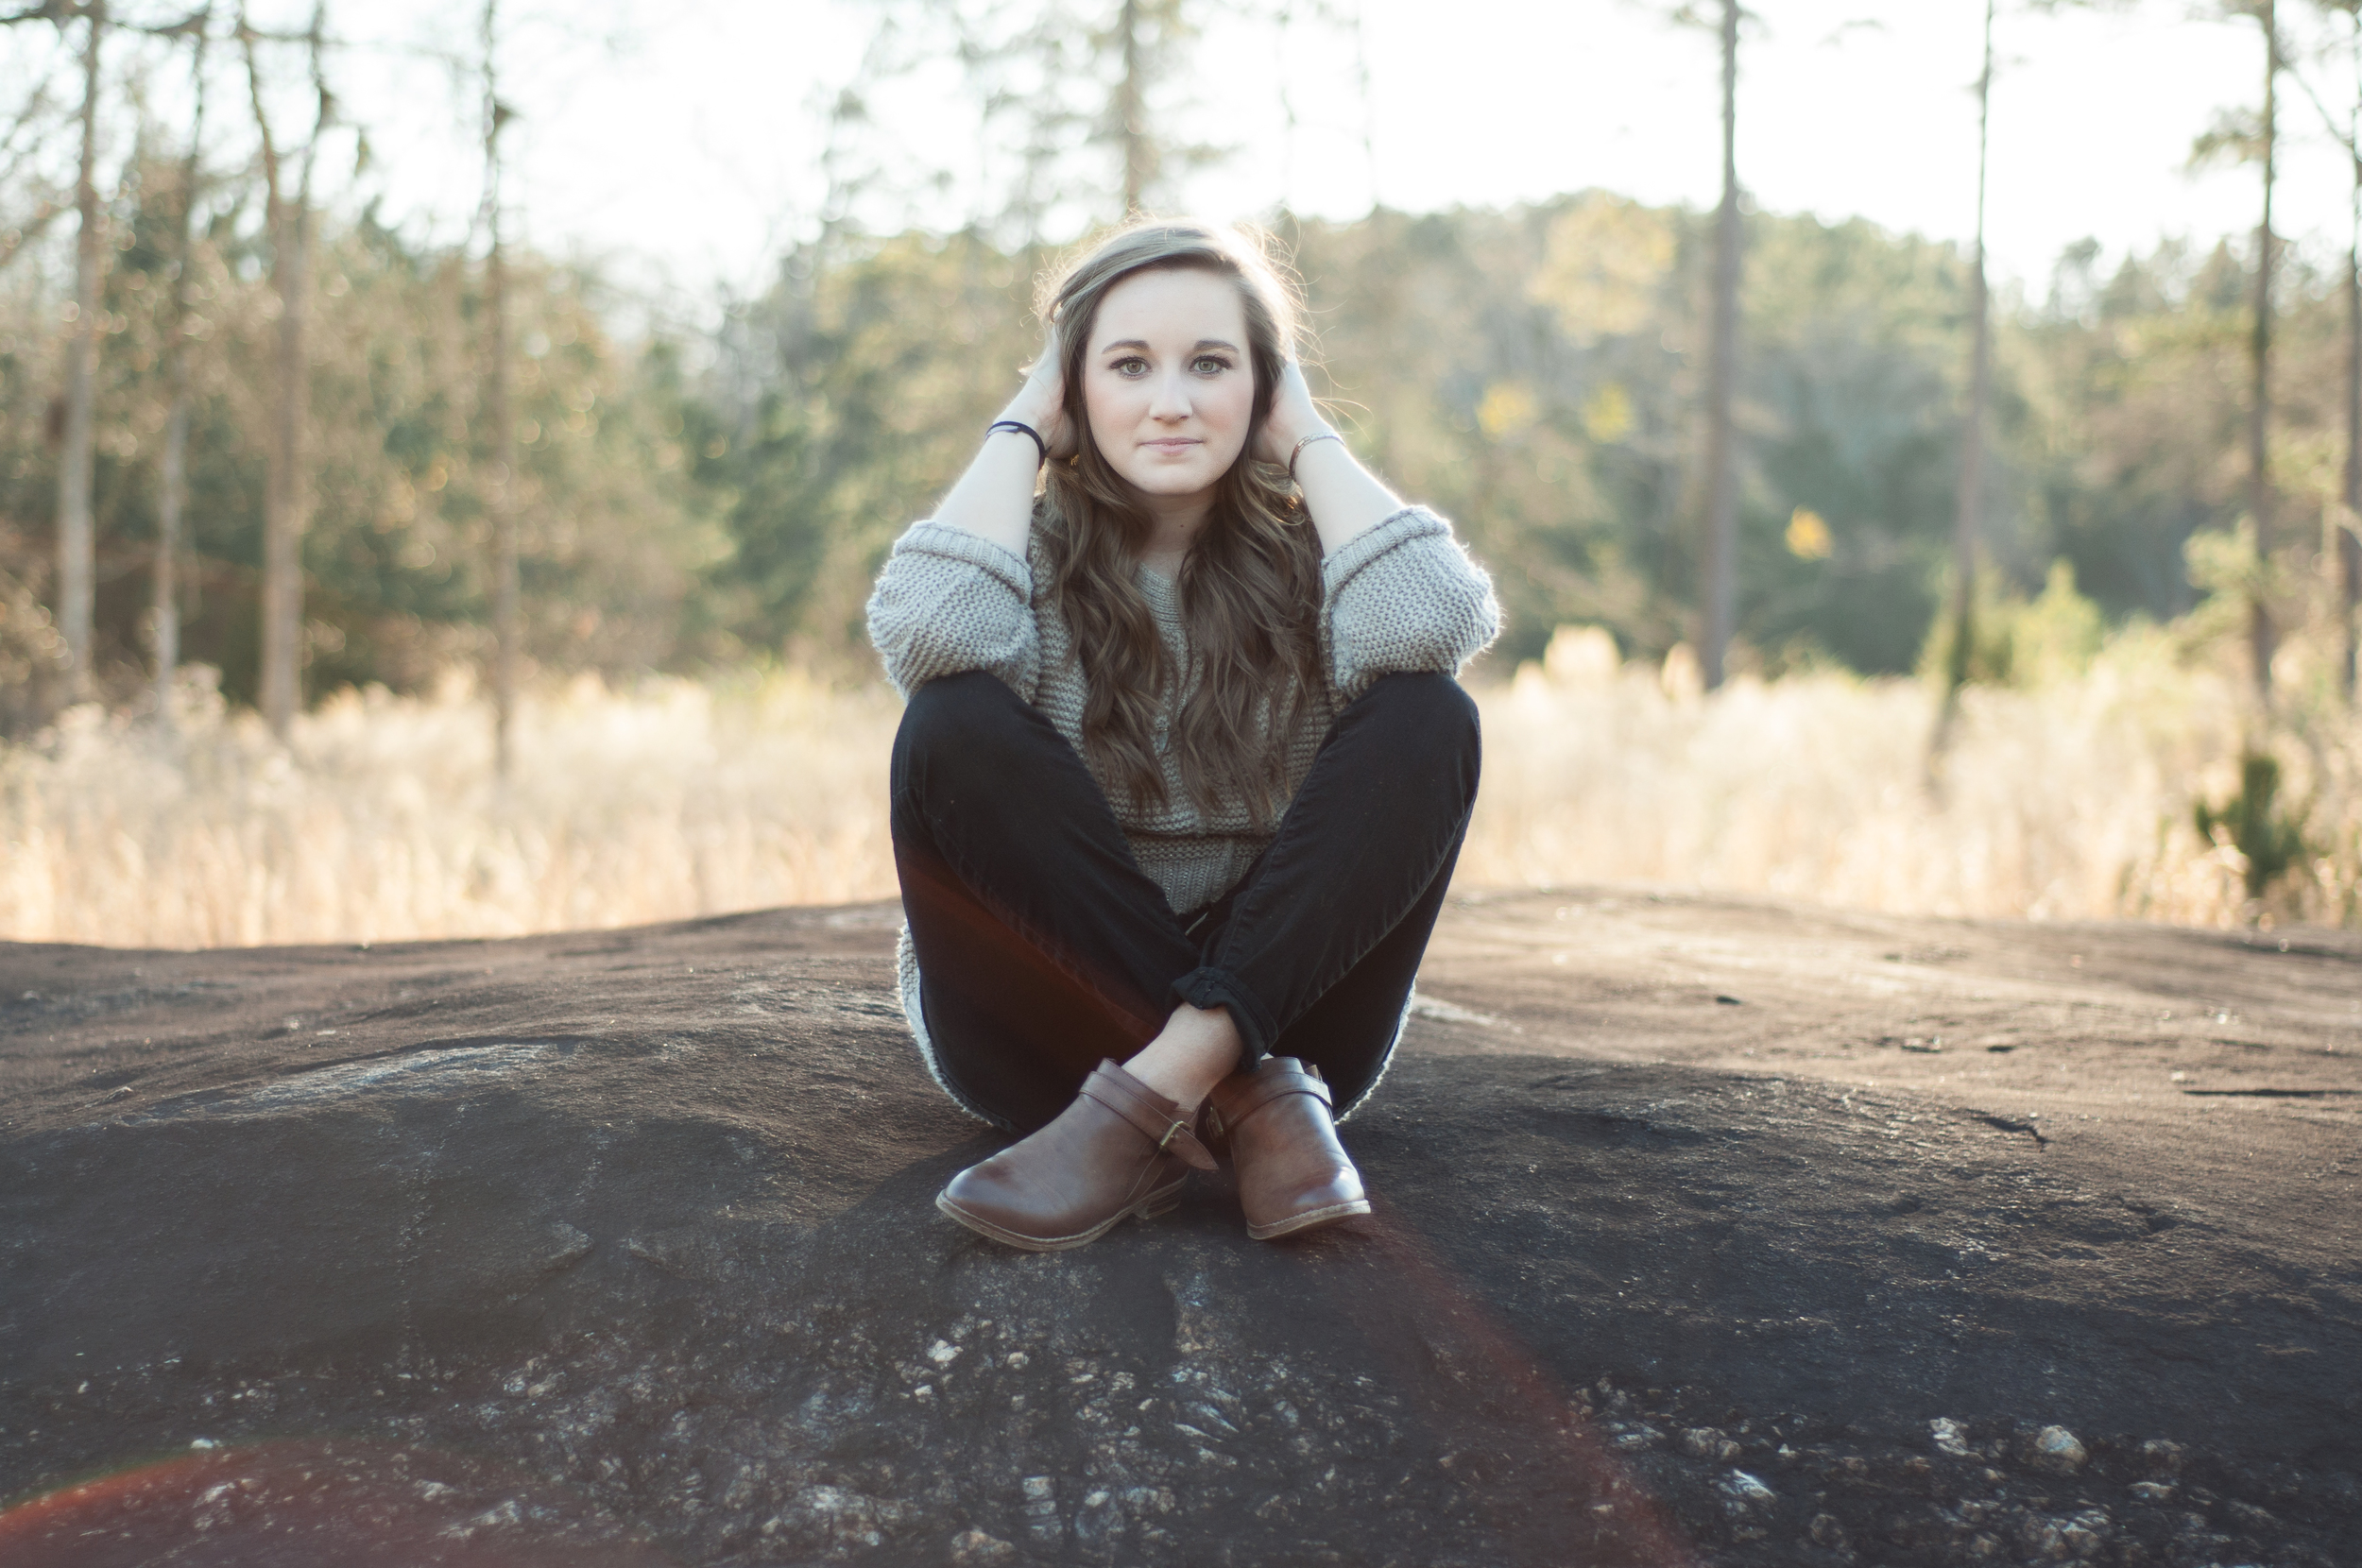 lindsey ann photography, alabama photography, senior portraits, portraits, portrait photography